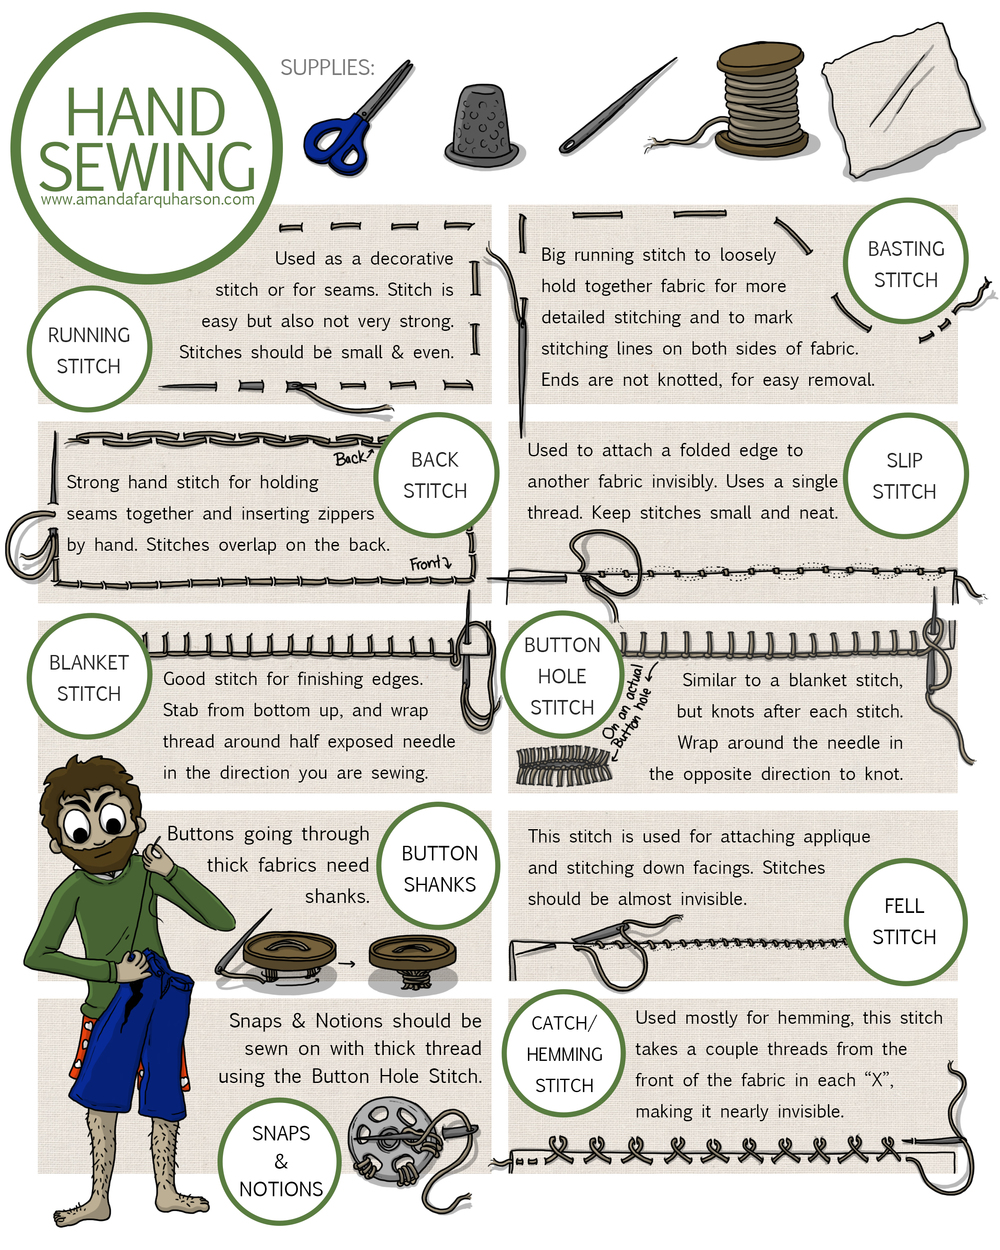 Different Types Of Hand Knitting Stitches : The 8 Most Helpful Hand Sewing Stitches   Amanda Farquharson